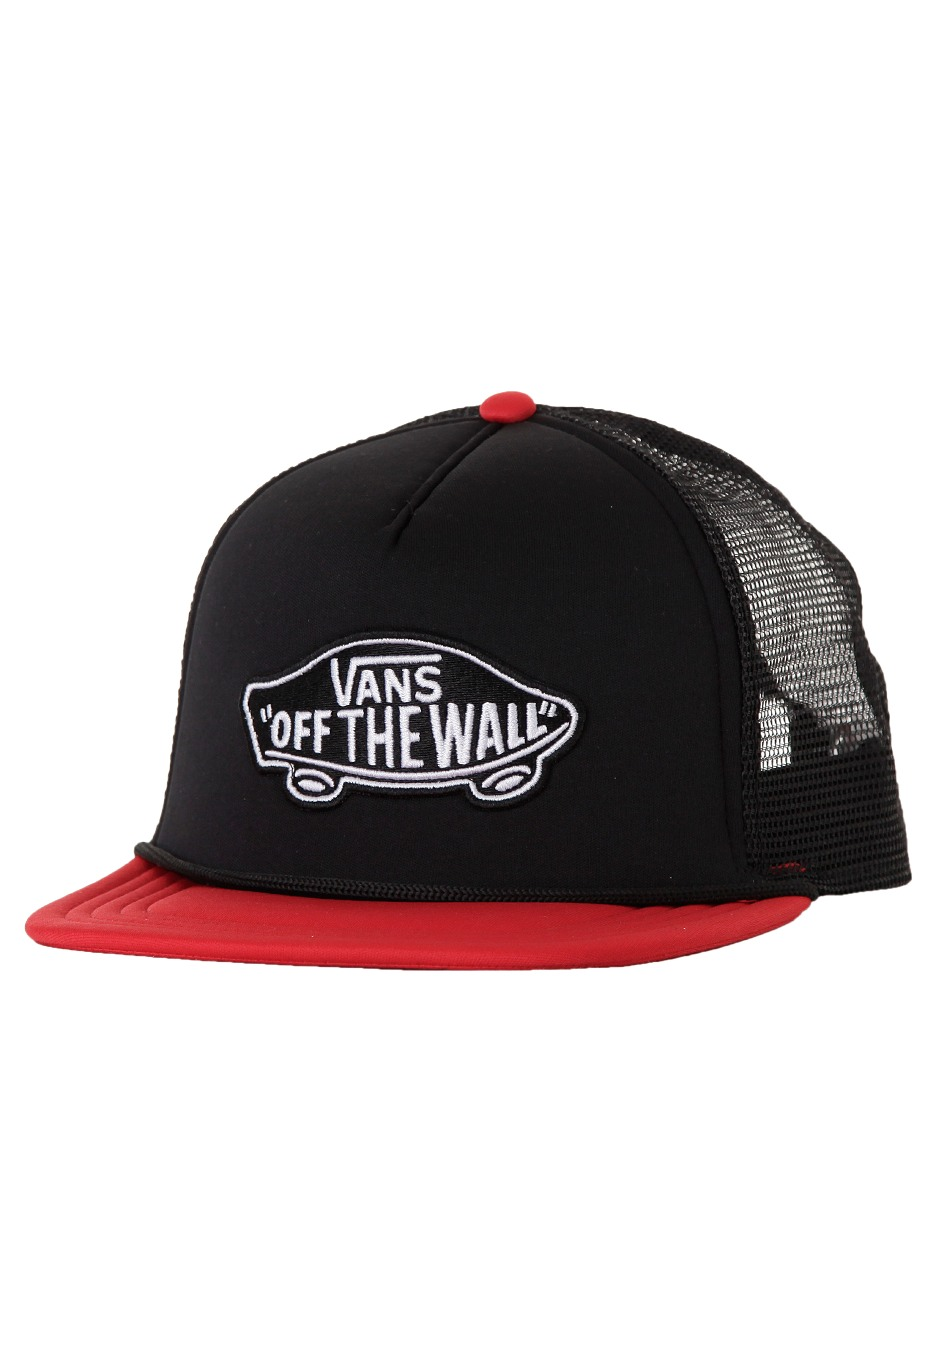 b2262888e4d Vans - Classic Patch Trucker Black Reinvent Red - Cap - Impericon.com UK